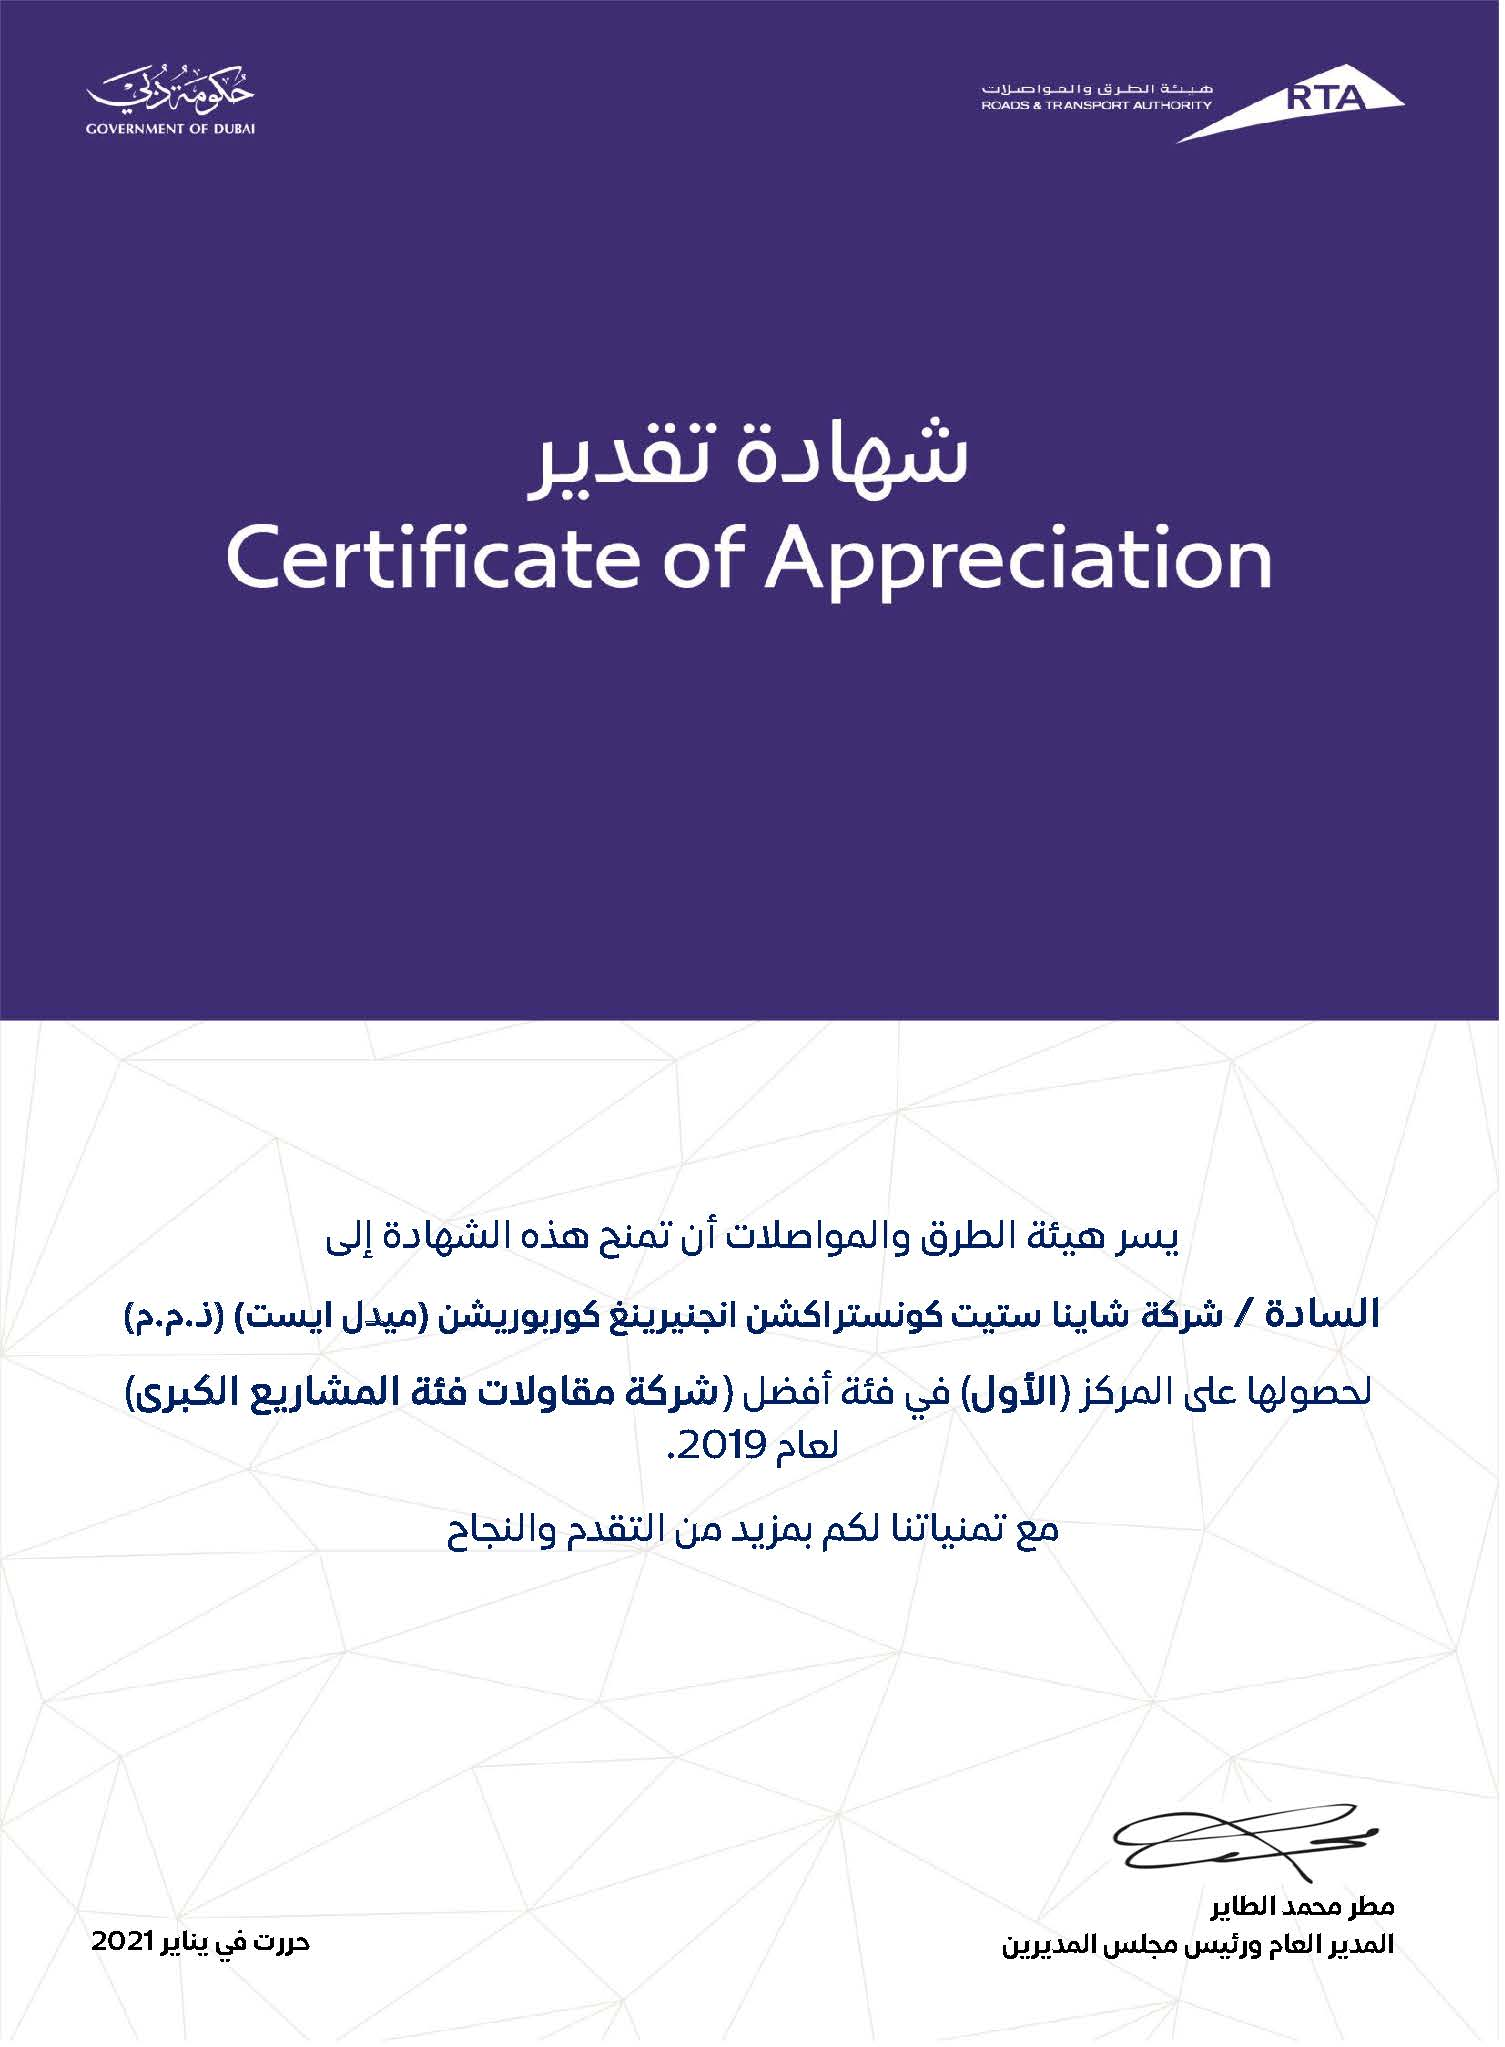 Civil & Infrastructure Division Awarded Best Large Scale Projects' Contractors Category for the Year 2019 from Dubai RTA